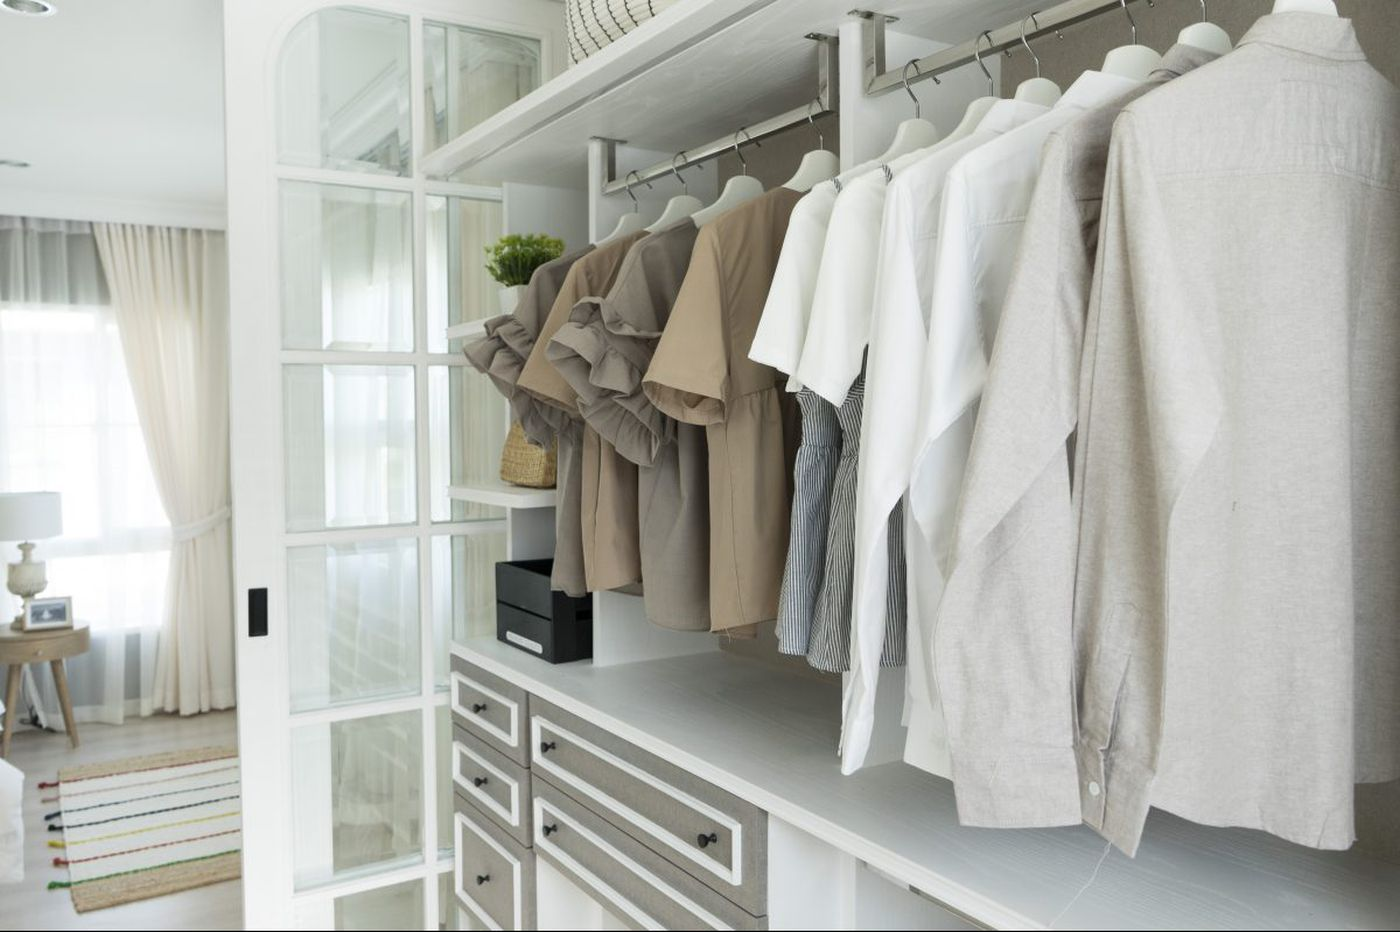 Ask Jennifer Adam: How is it my clothes closet is smelling up my bedroom?